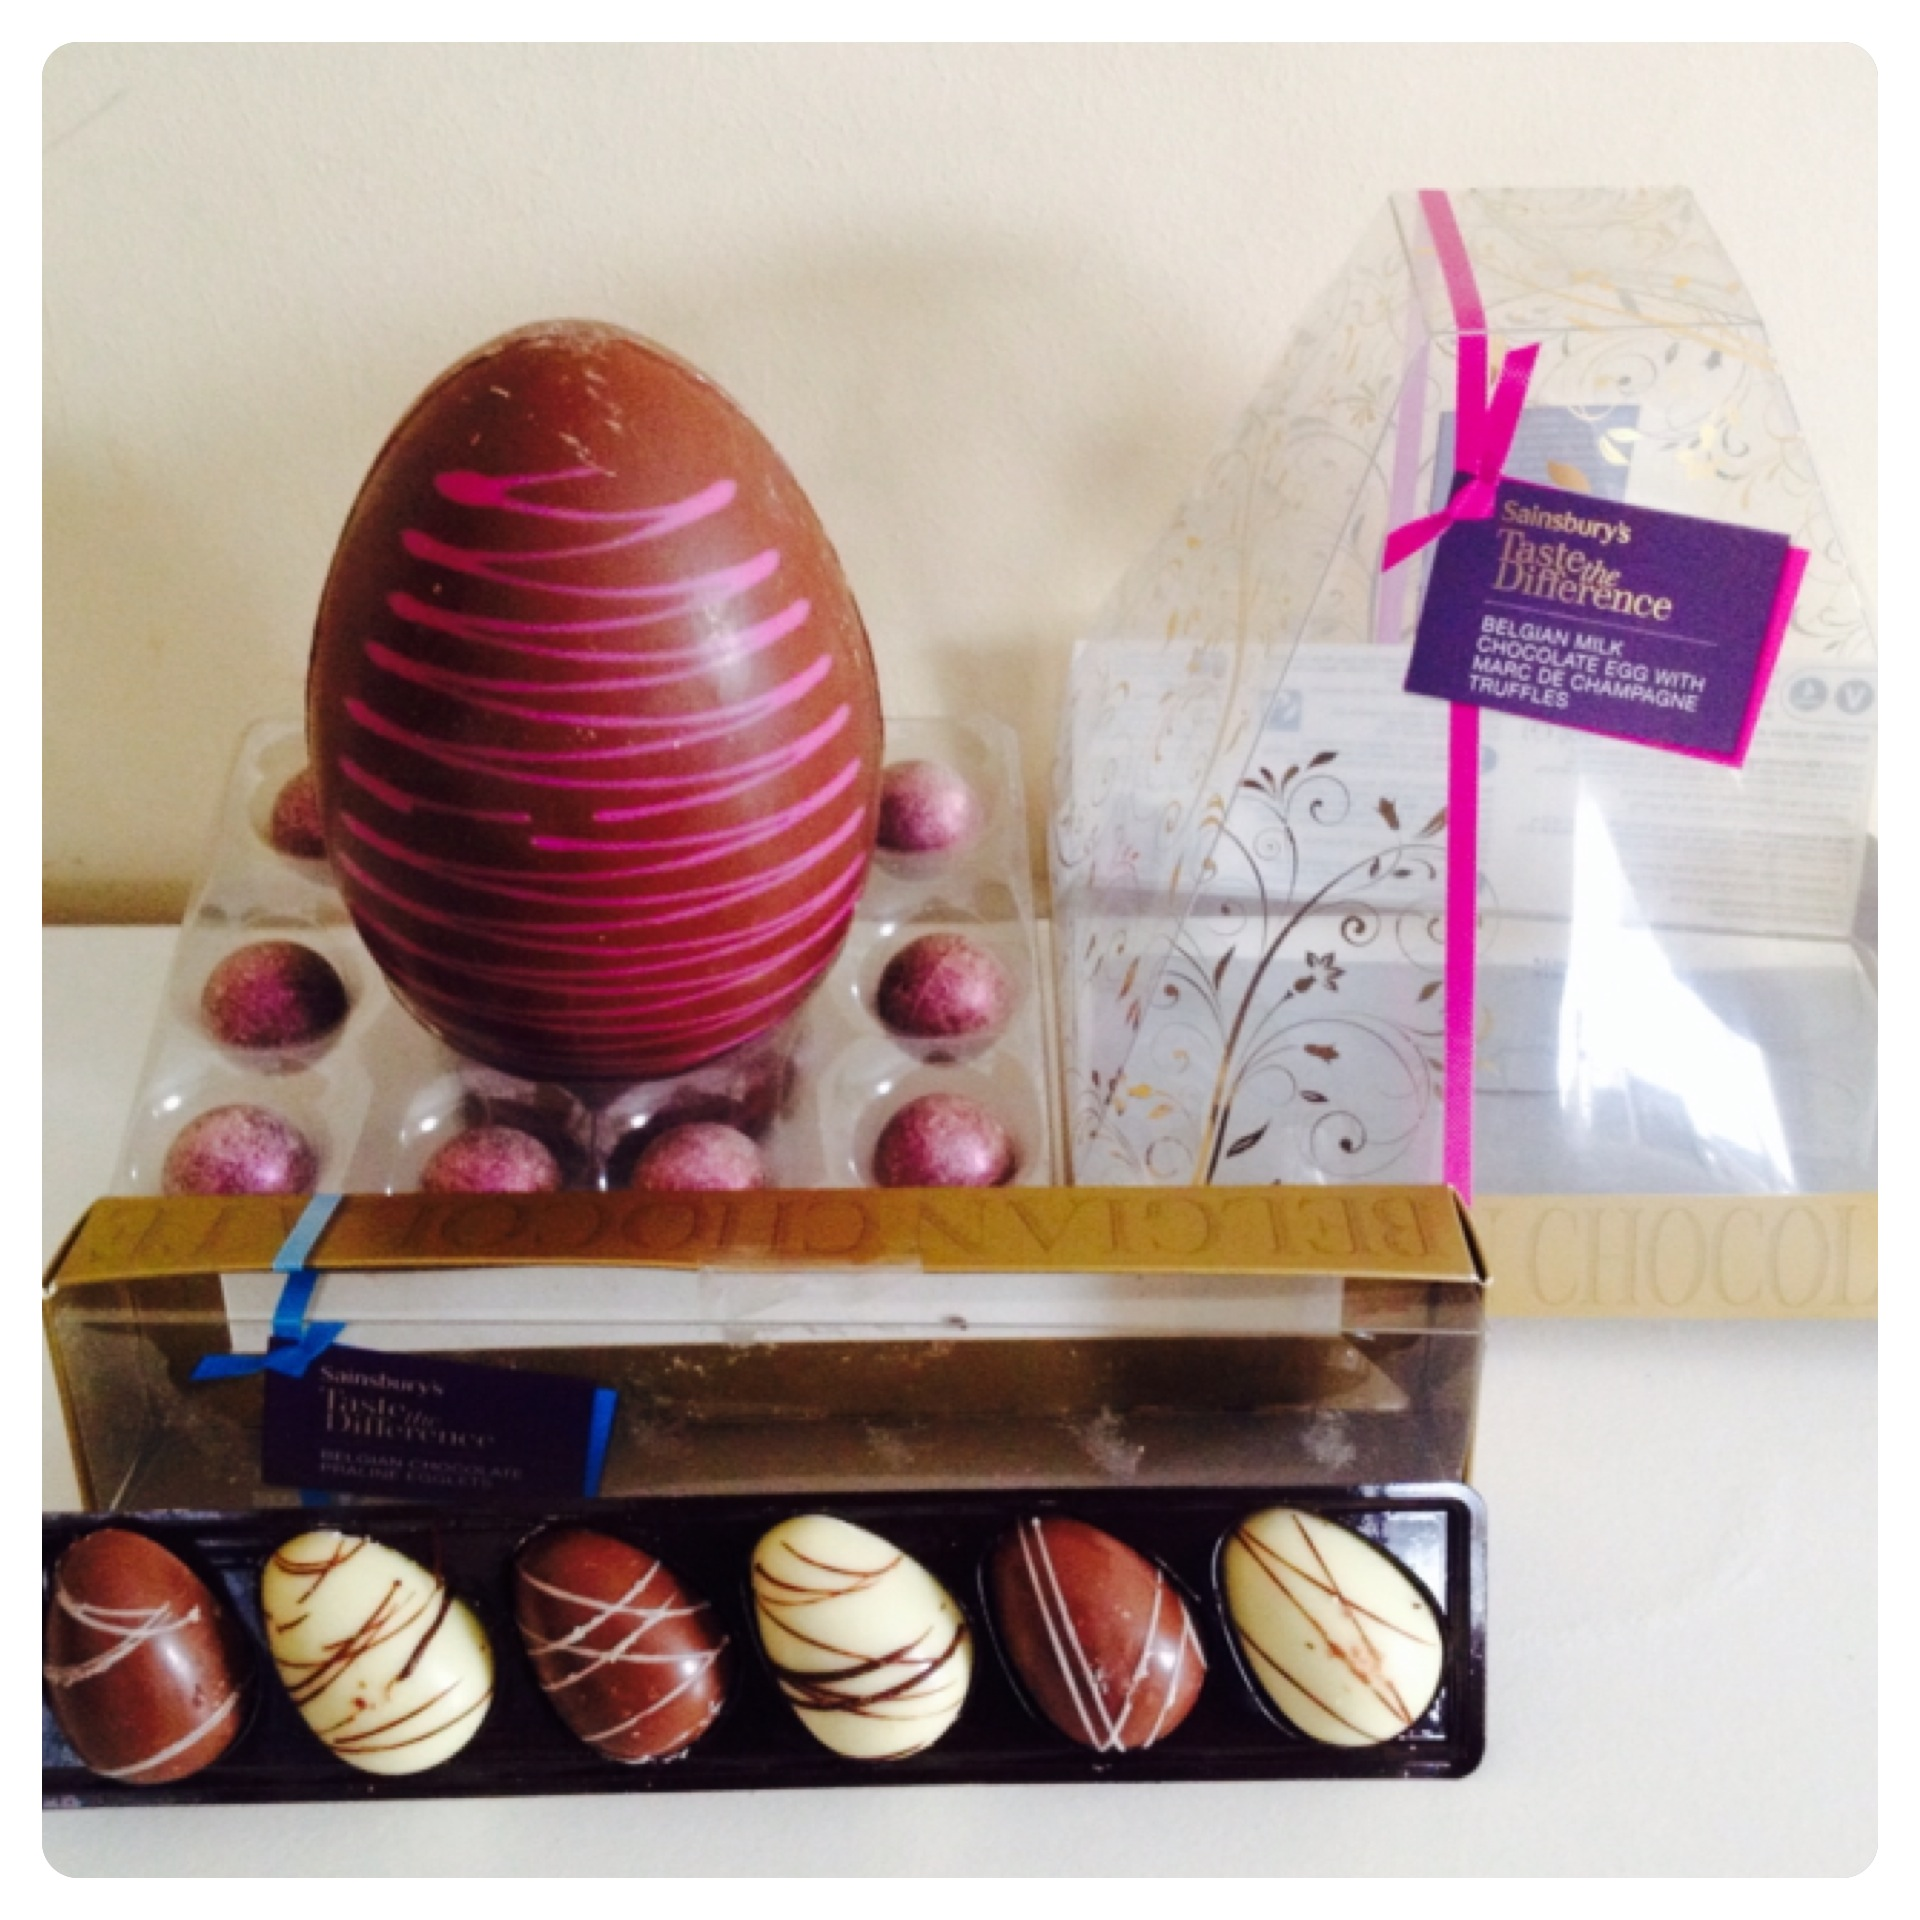 Easter gift guide easter eggs sweet treats and alternative gifts sainsburys taste the difference easter eggs negle Choice Image